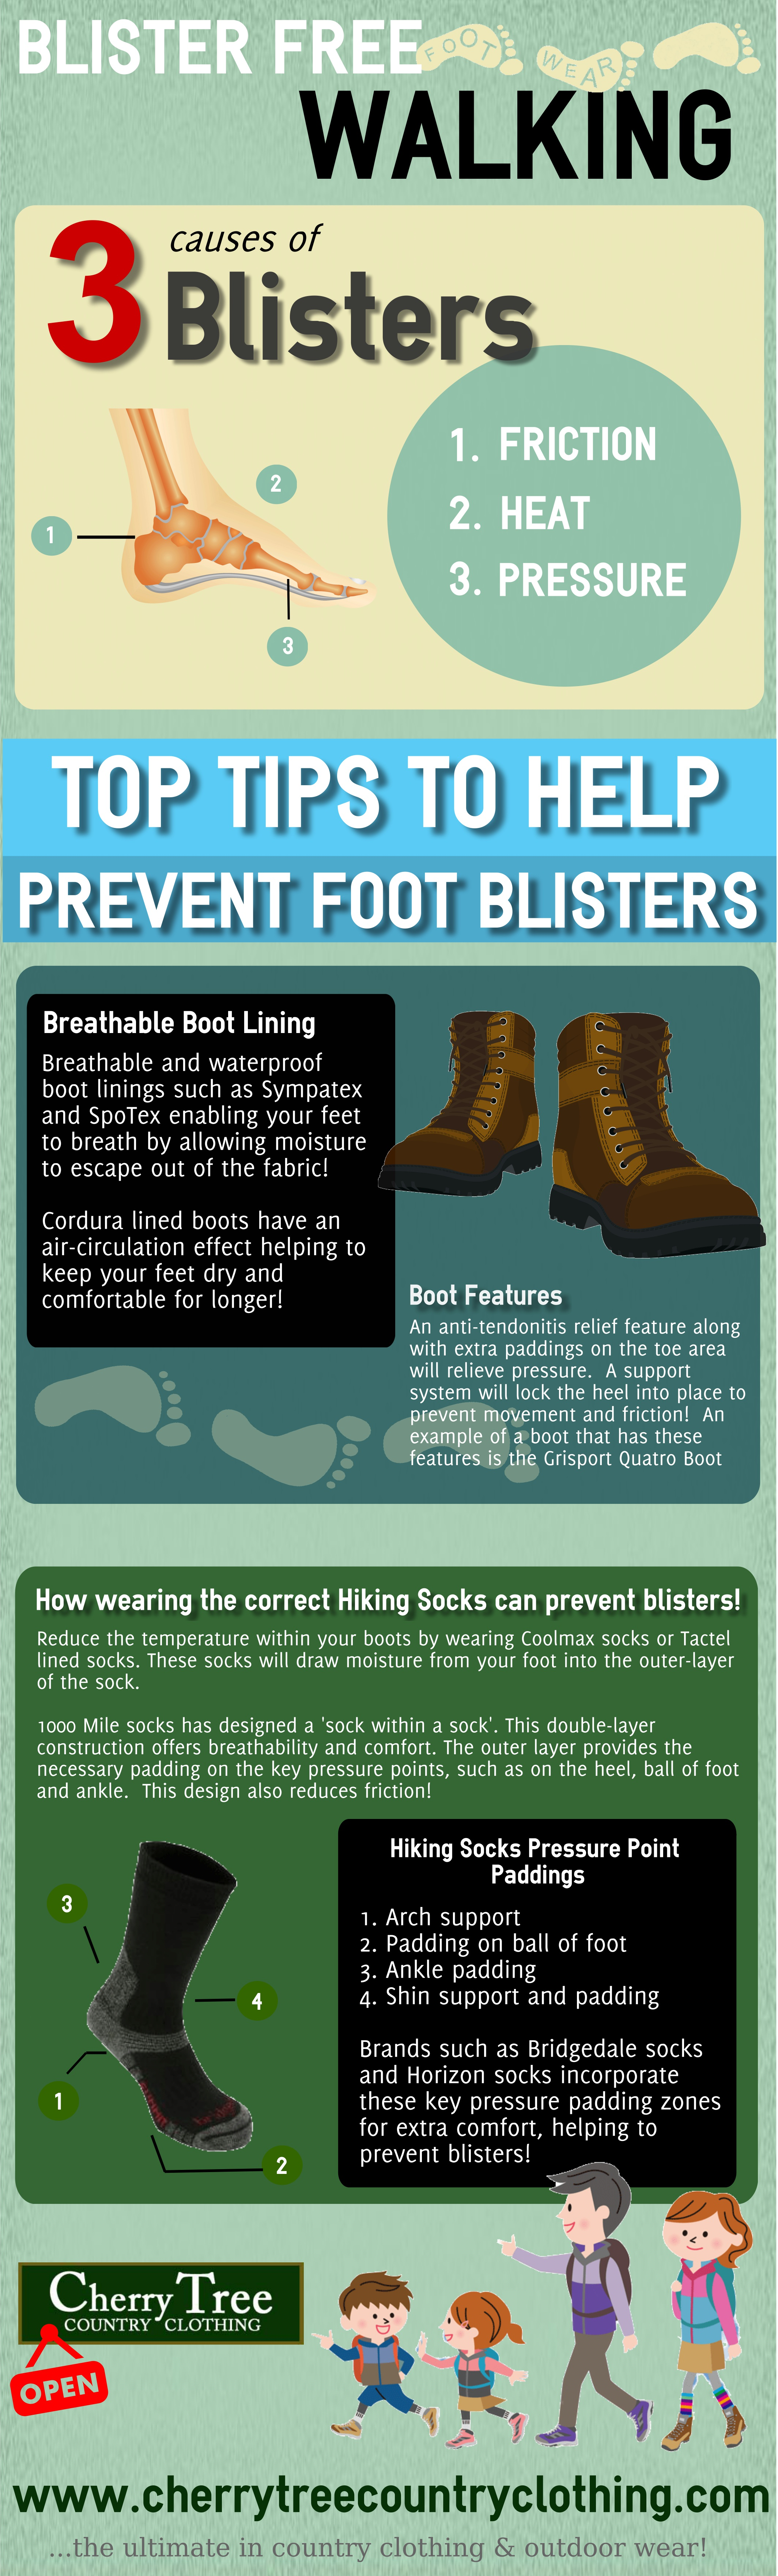 how to avoid blisters when hiking